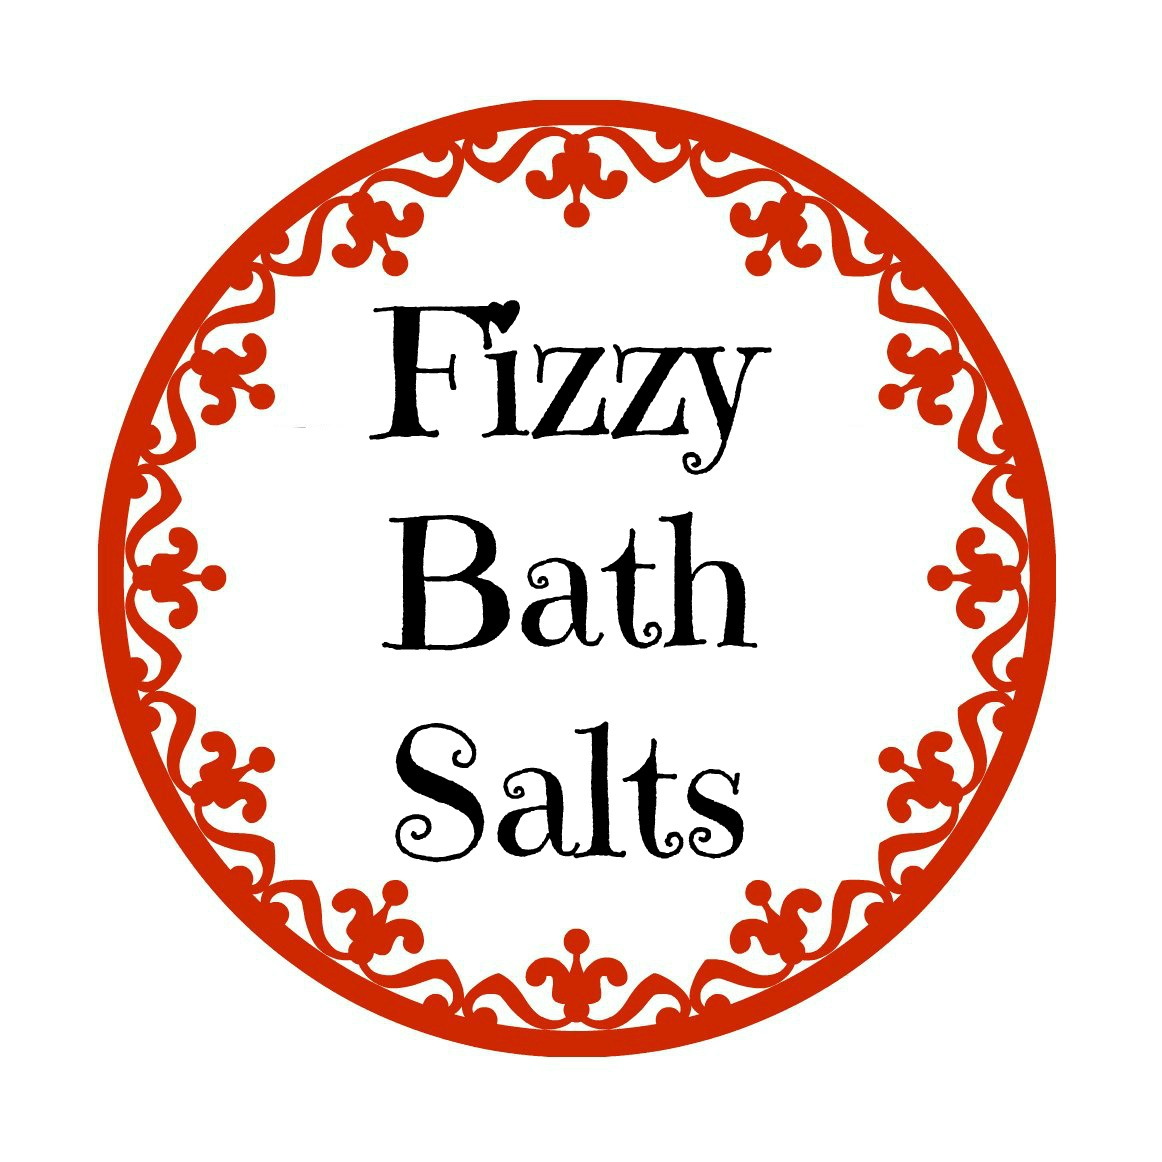 fizzy bath salts label